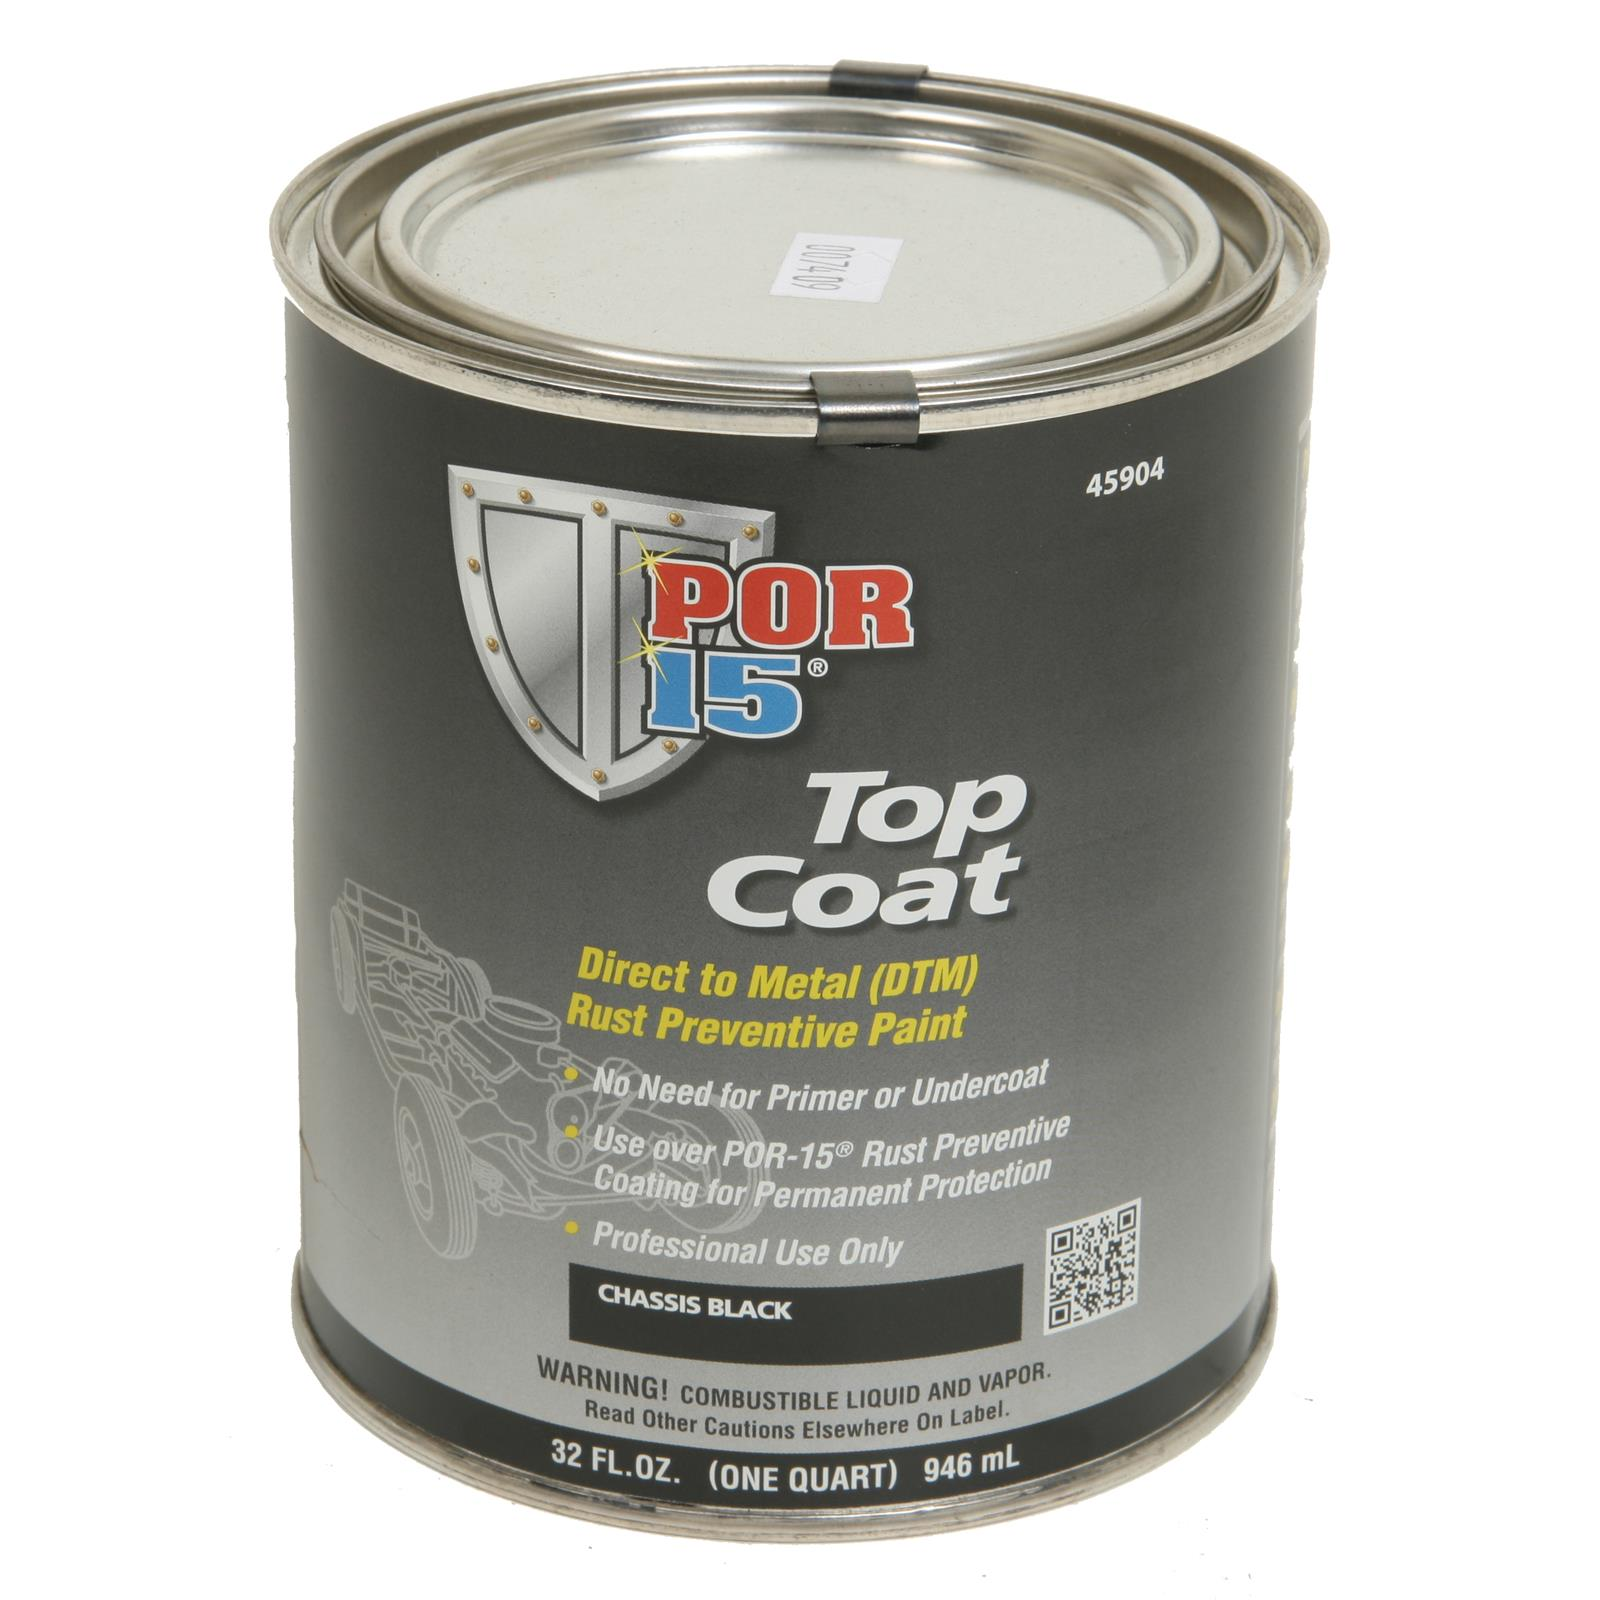 Por 15 Top Coat Paint 45904 Free Shipping On Orders Over 99 At Summit Racing